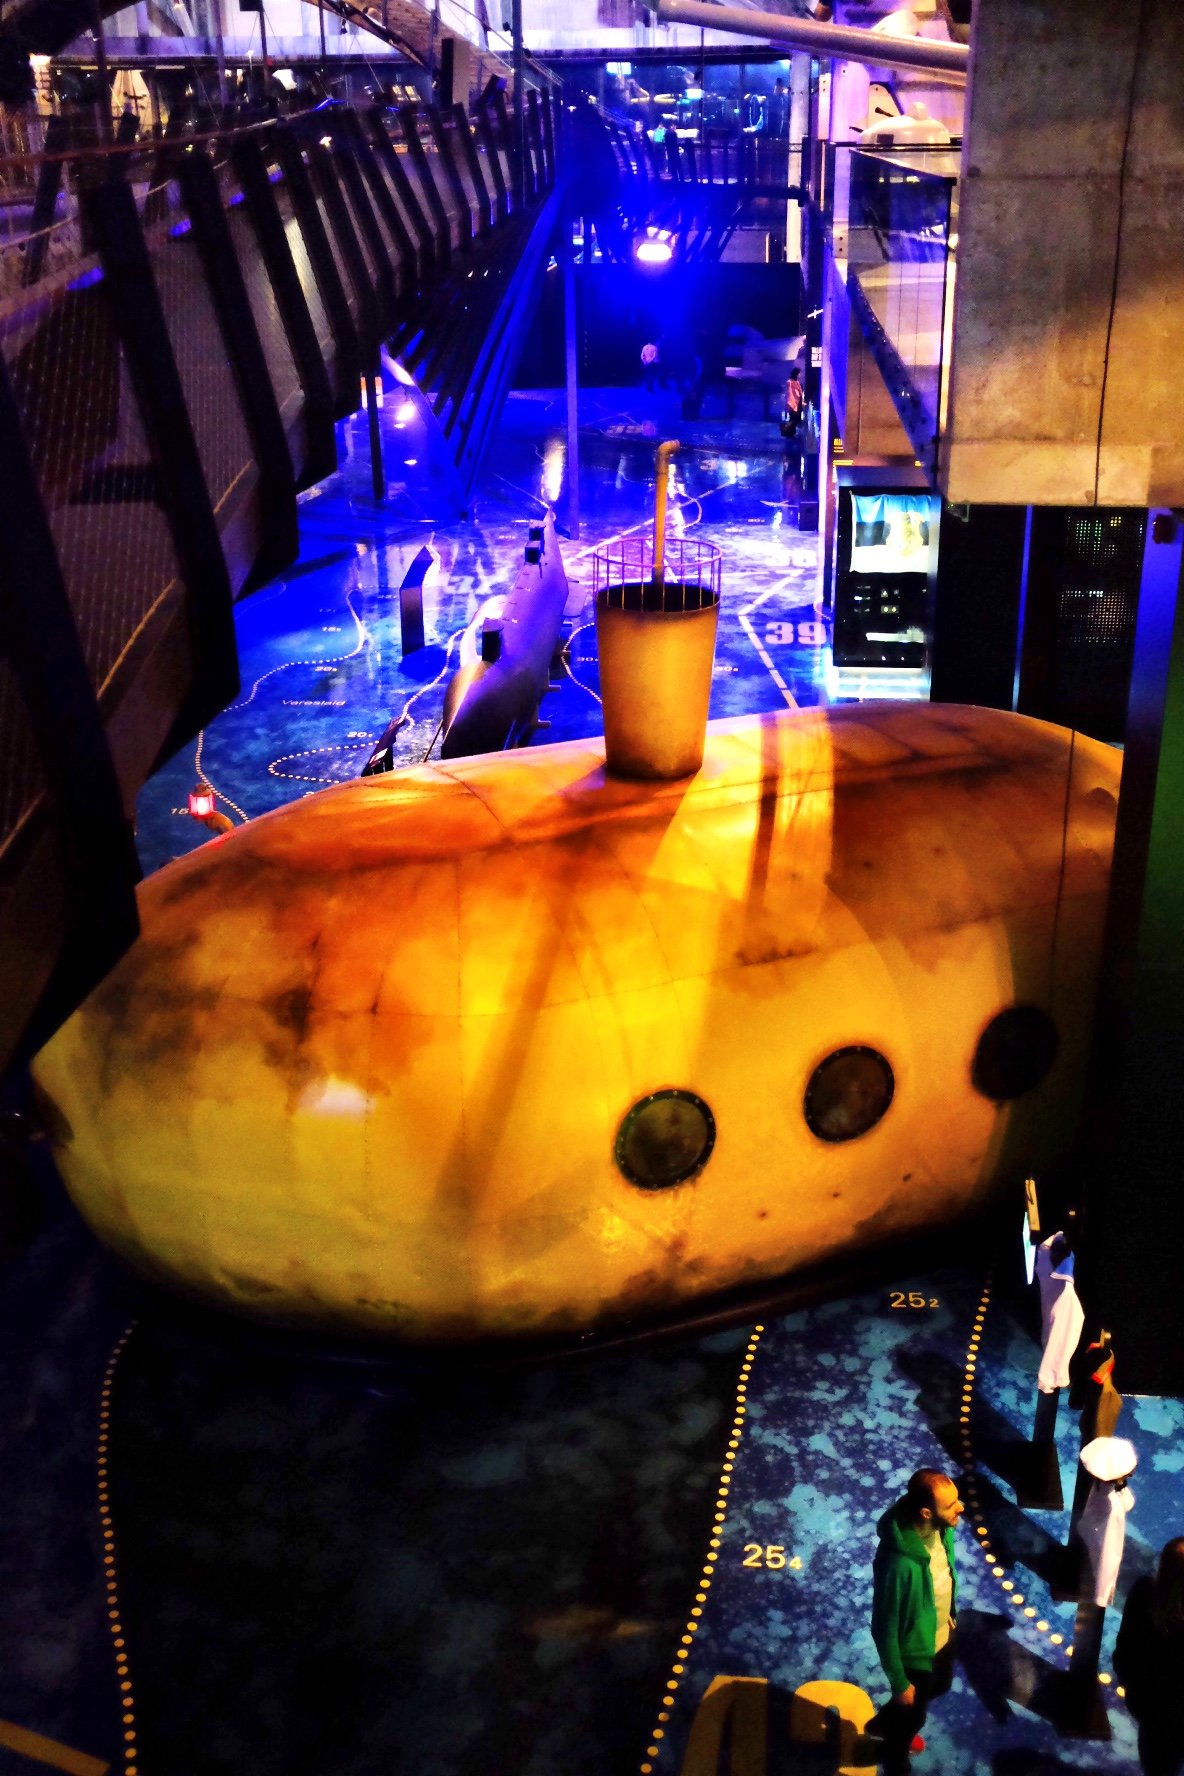 Yellow Submarine at the Seaplane Harbour Museum in Tallinn